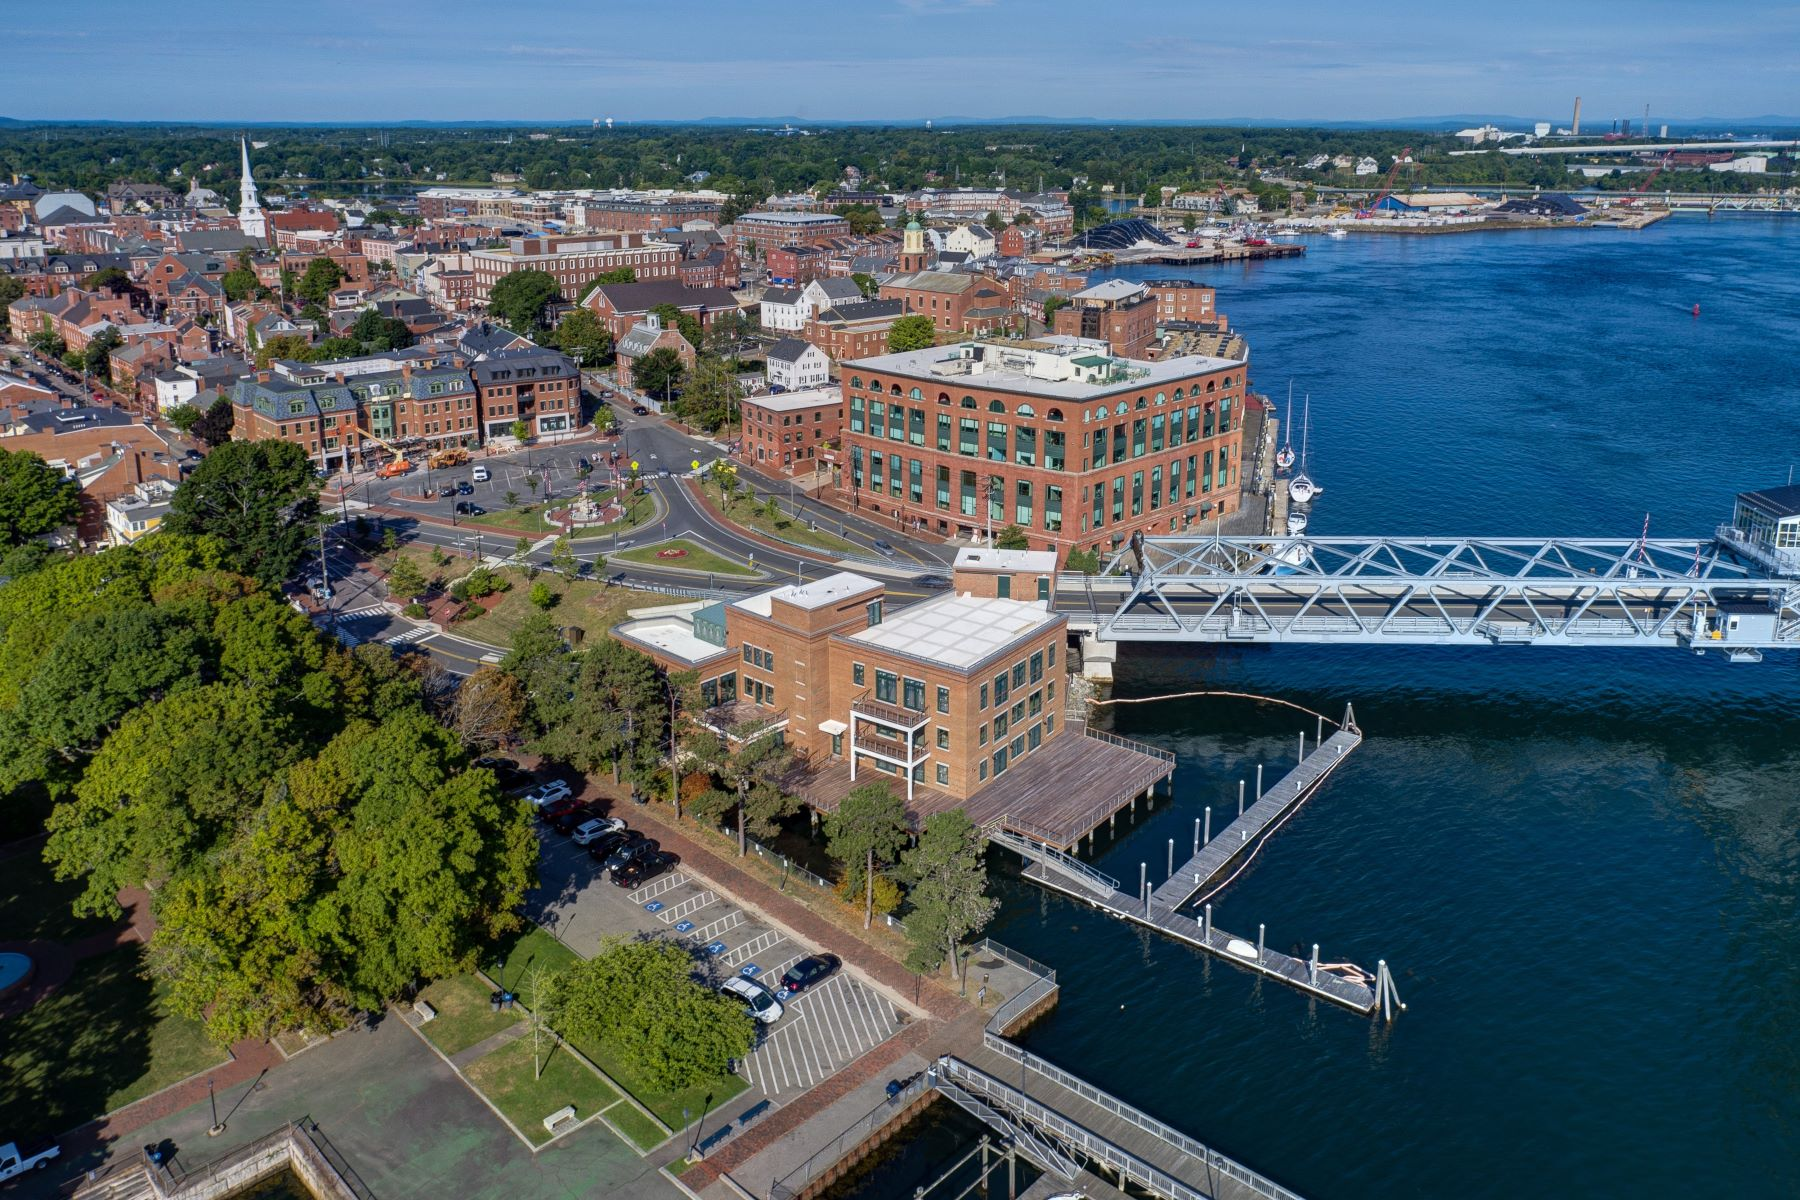 شقة بعمارة للـ Sale في Luxury Waterfront Condominium in Downtown Portsmouth 10 State Street Unit B Portsmouth, New Hampshire 03801 United States